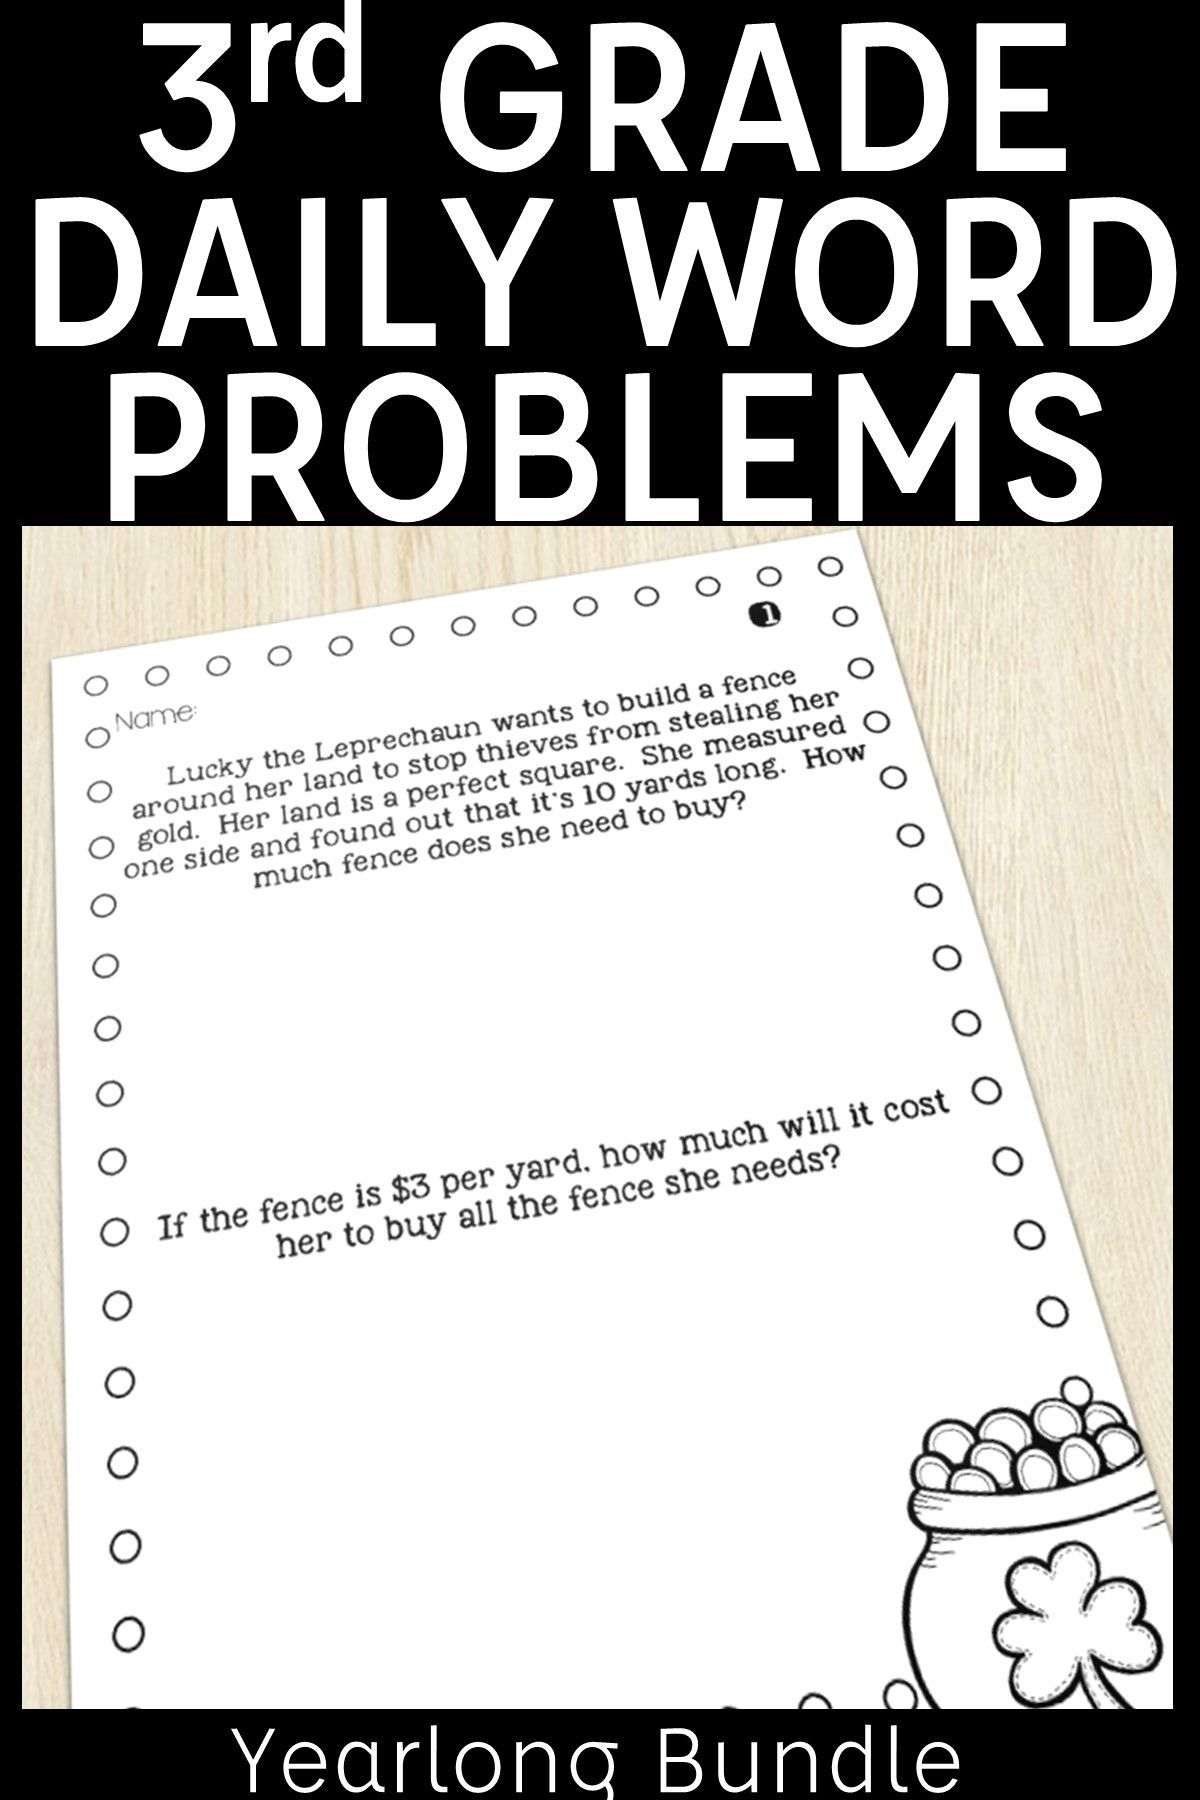 small resolution of https://cute766.info/3rd-grade-multi-step-word-problems-of-the-day-bundle-3rd-grade-words-word-problems/